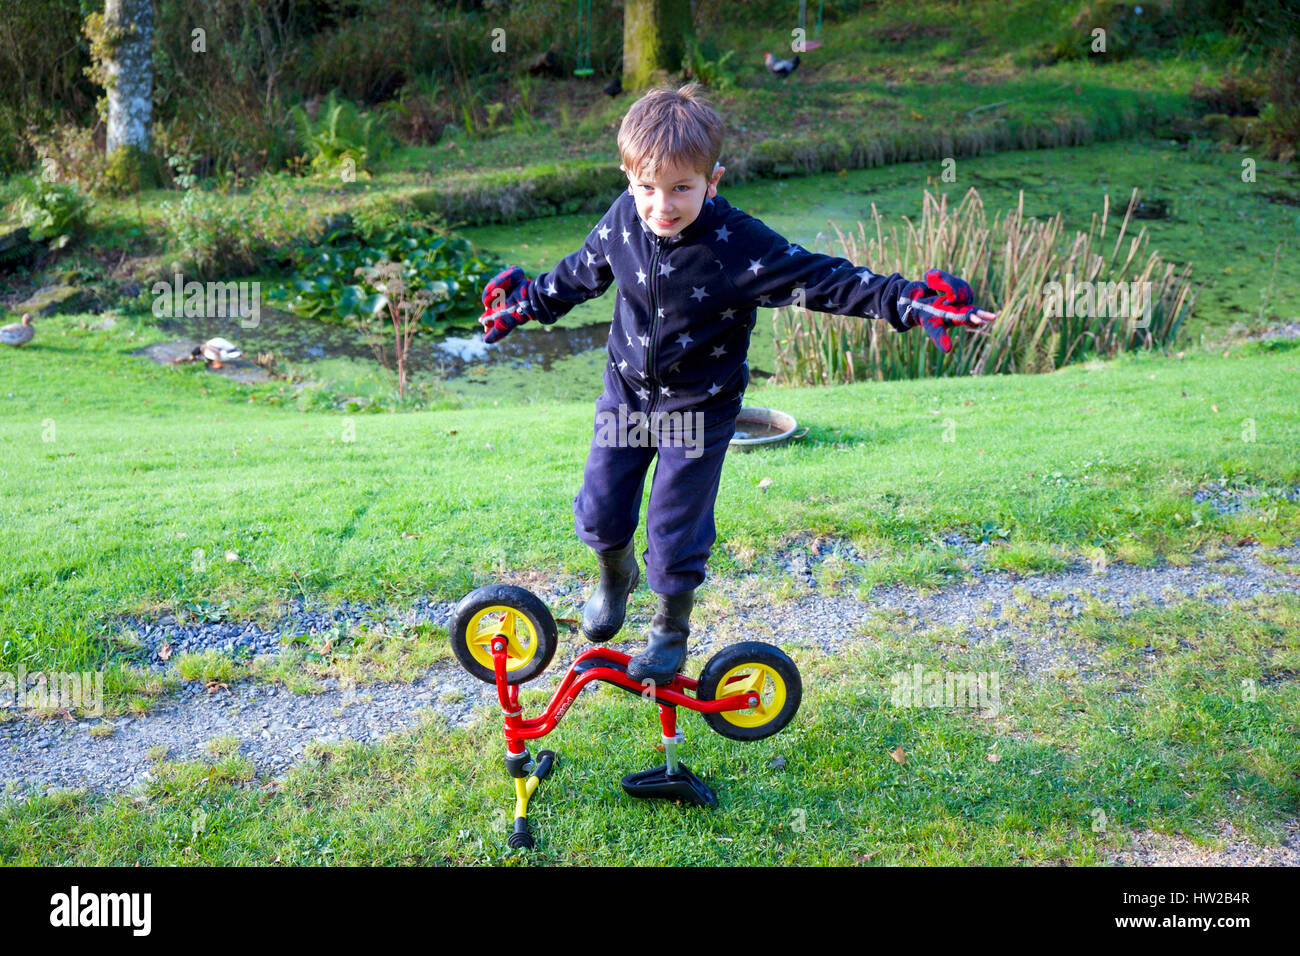 little boy playing bike outdoors stockfotos little boy playing bike outdoors bilder alamy. Black Bedroom Furniture Sets. Home Design Ideas